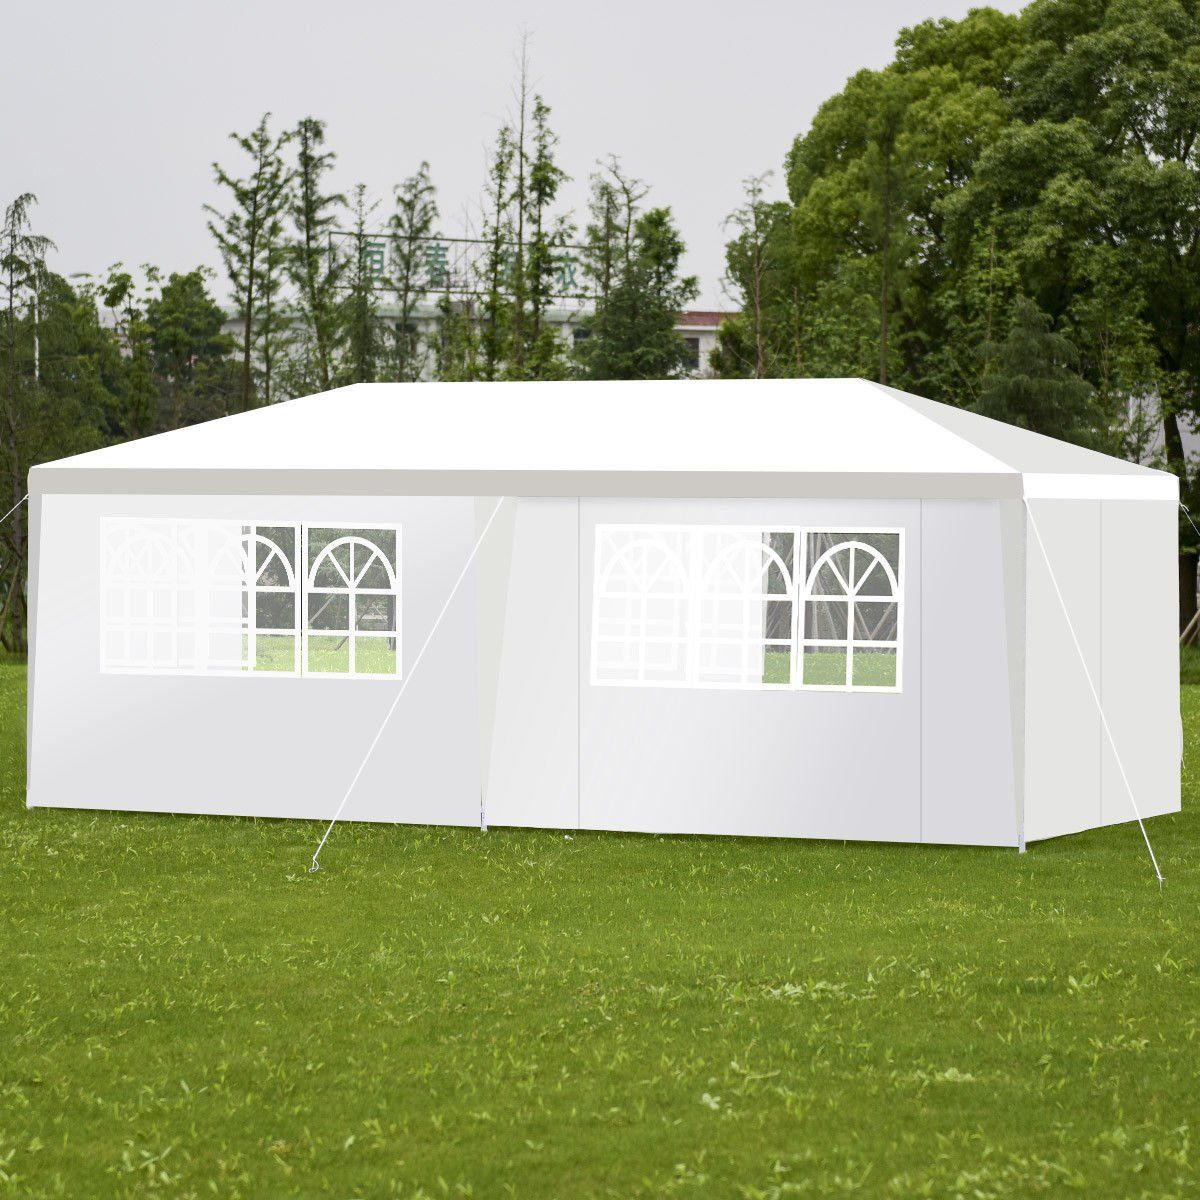 ShelterLogic 10 x 20 ft. Enclosure Kit with Windows Blue